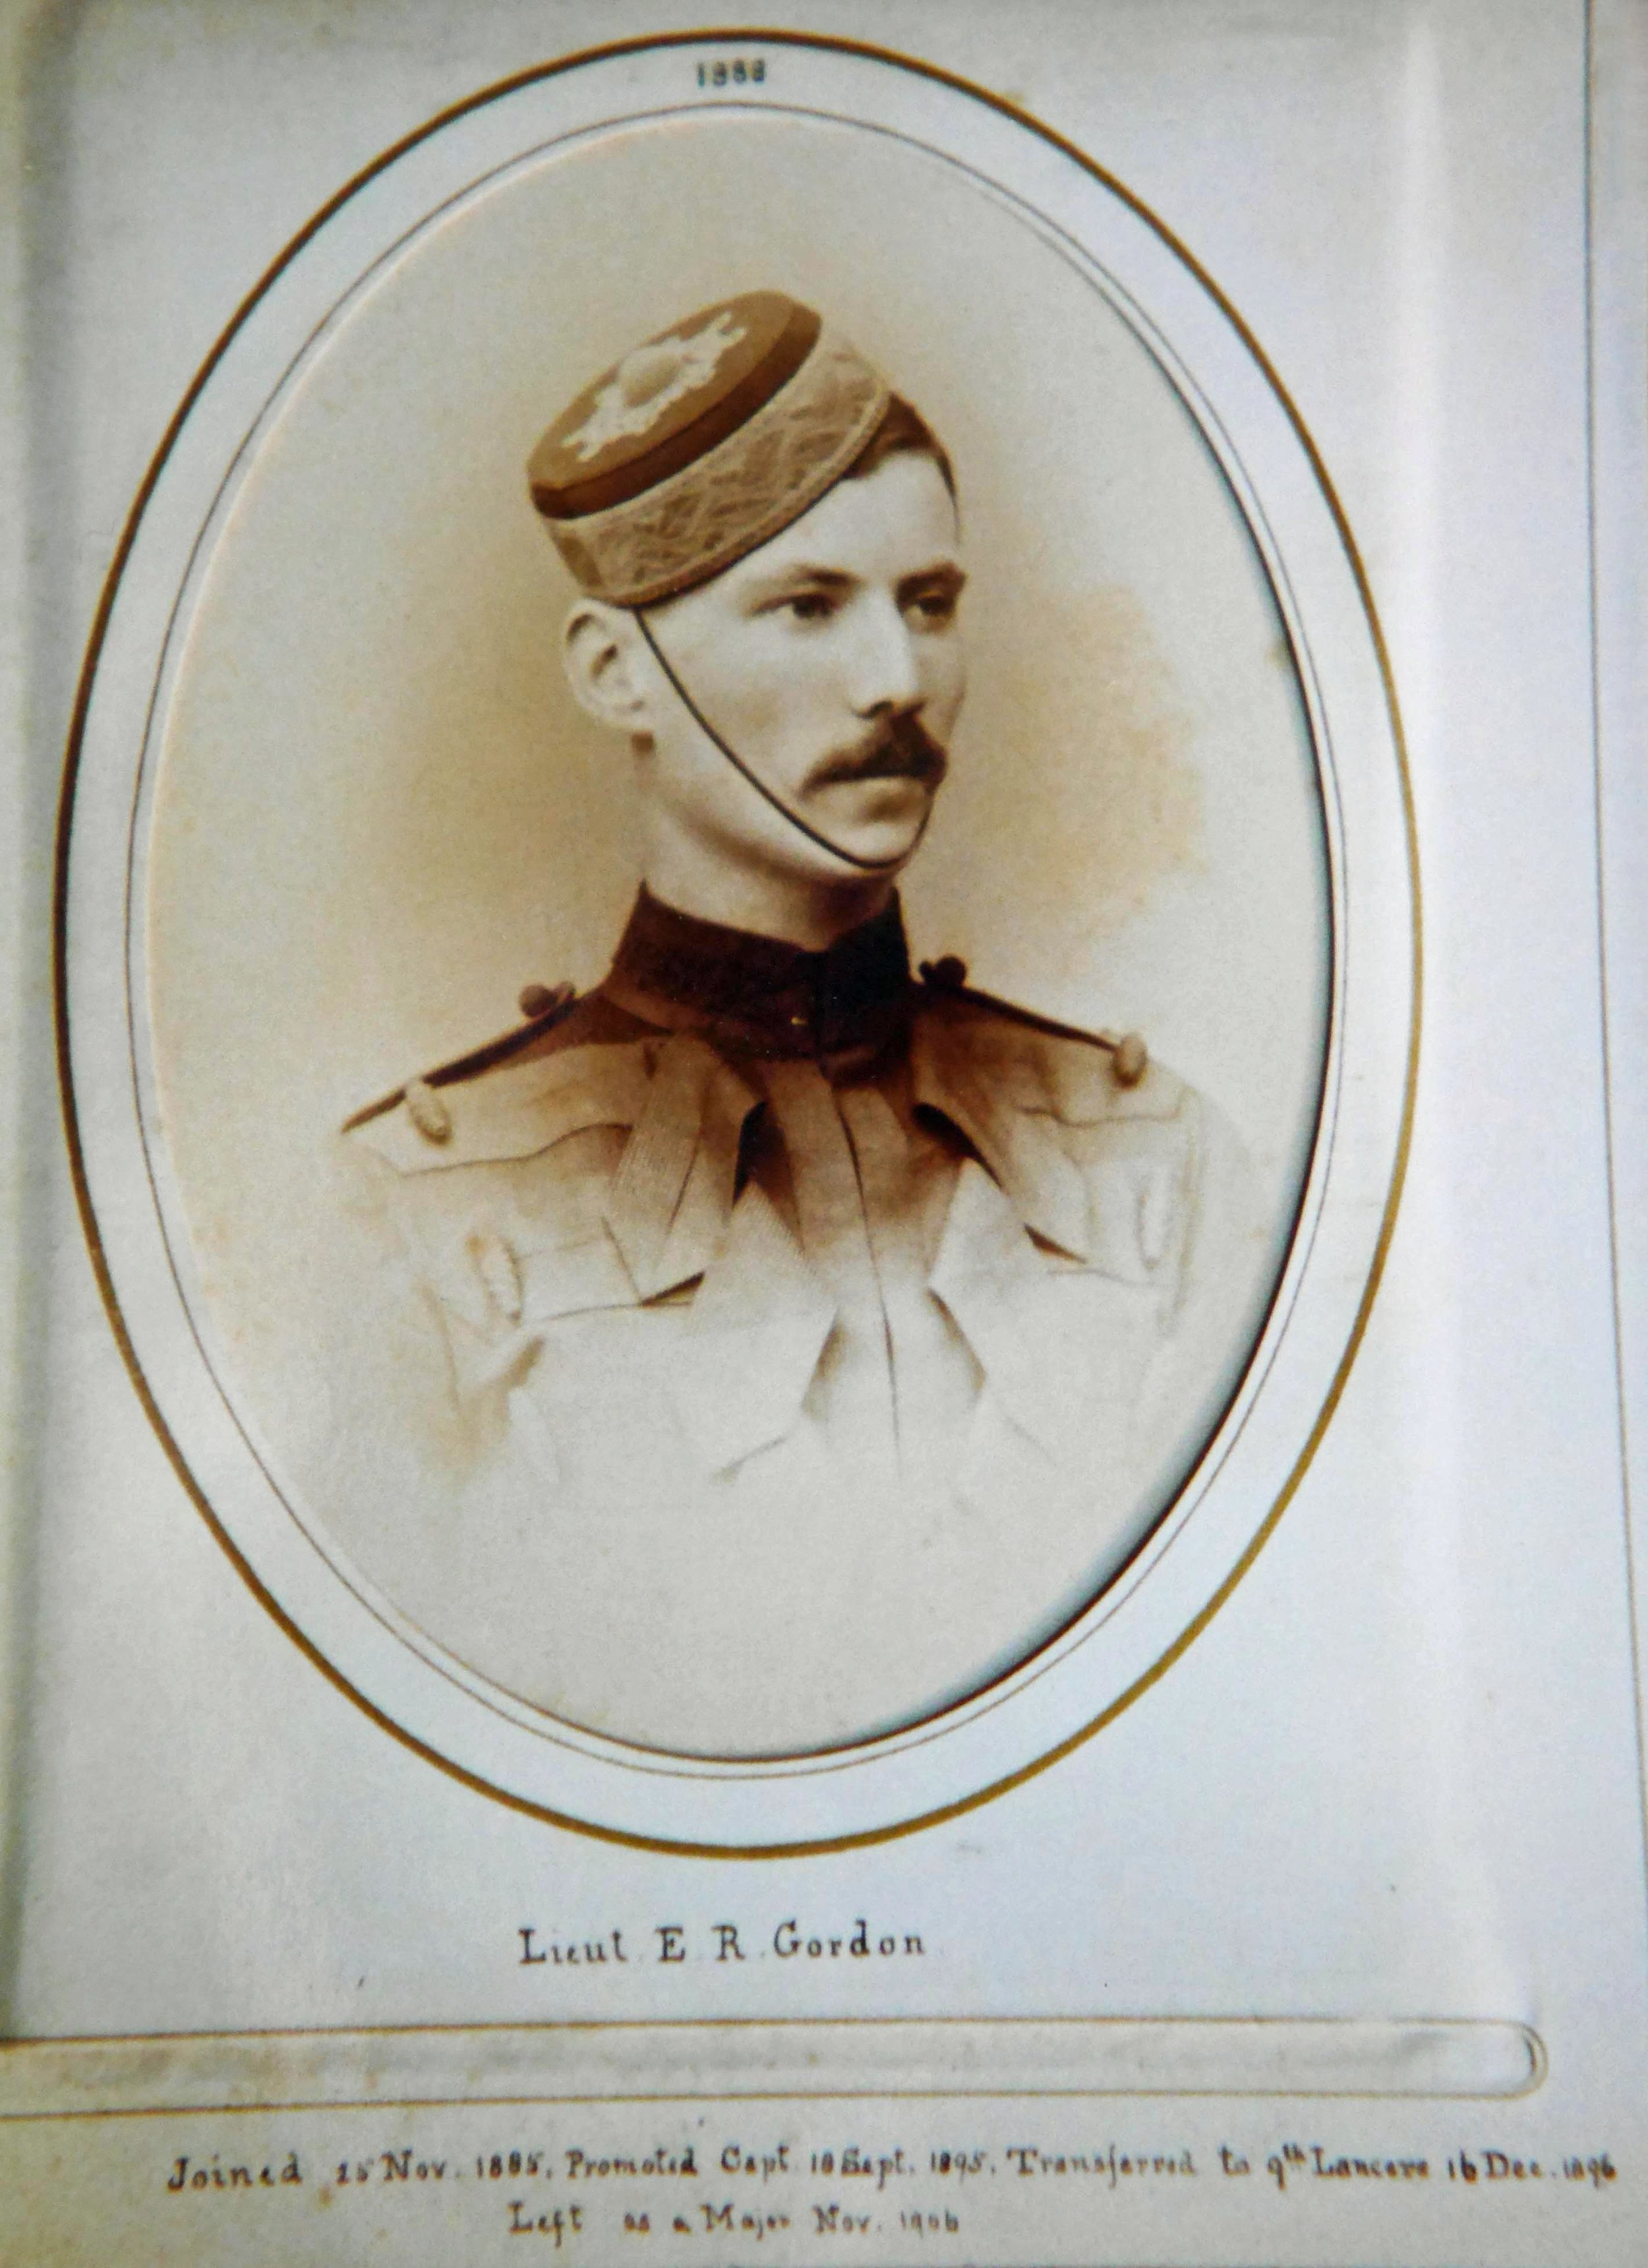 Edward Robertson Gordon in 1888 when he was a Lieutenant in the 2nd Dragoon Guards in Umballa, India (1st the Queen's Dragoon Guards Regimental Museum).